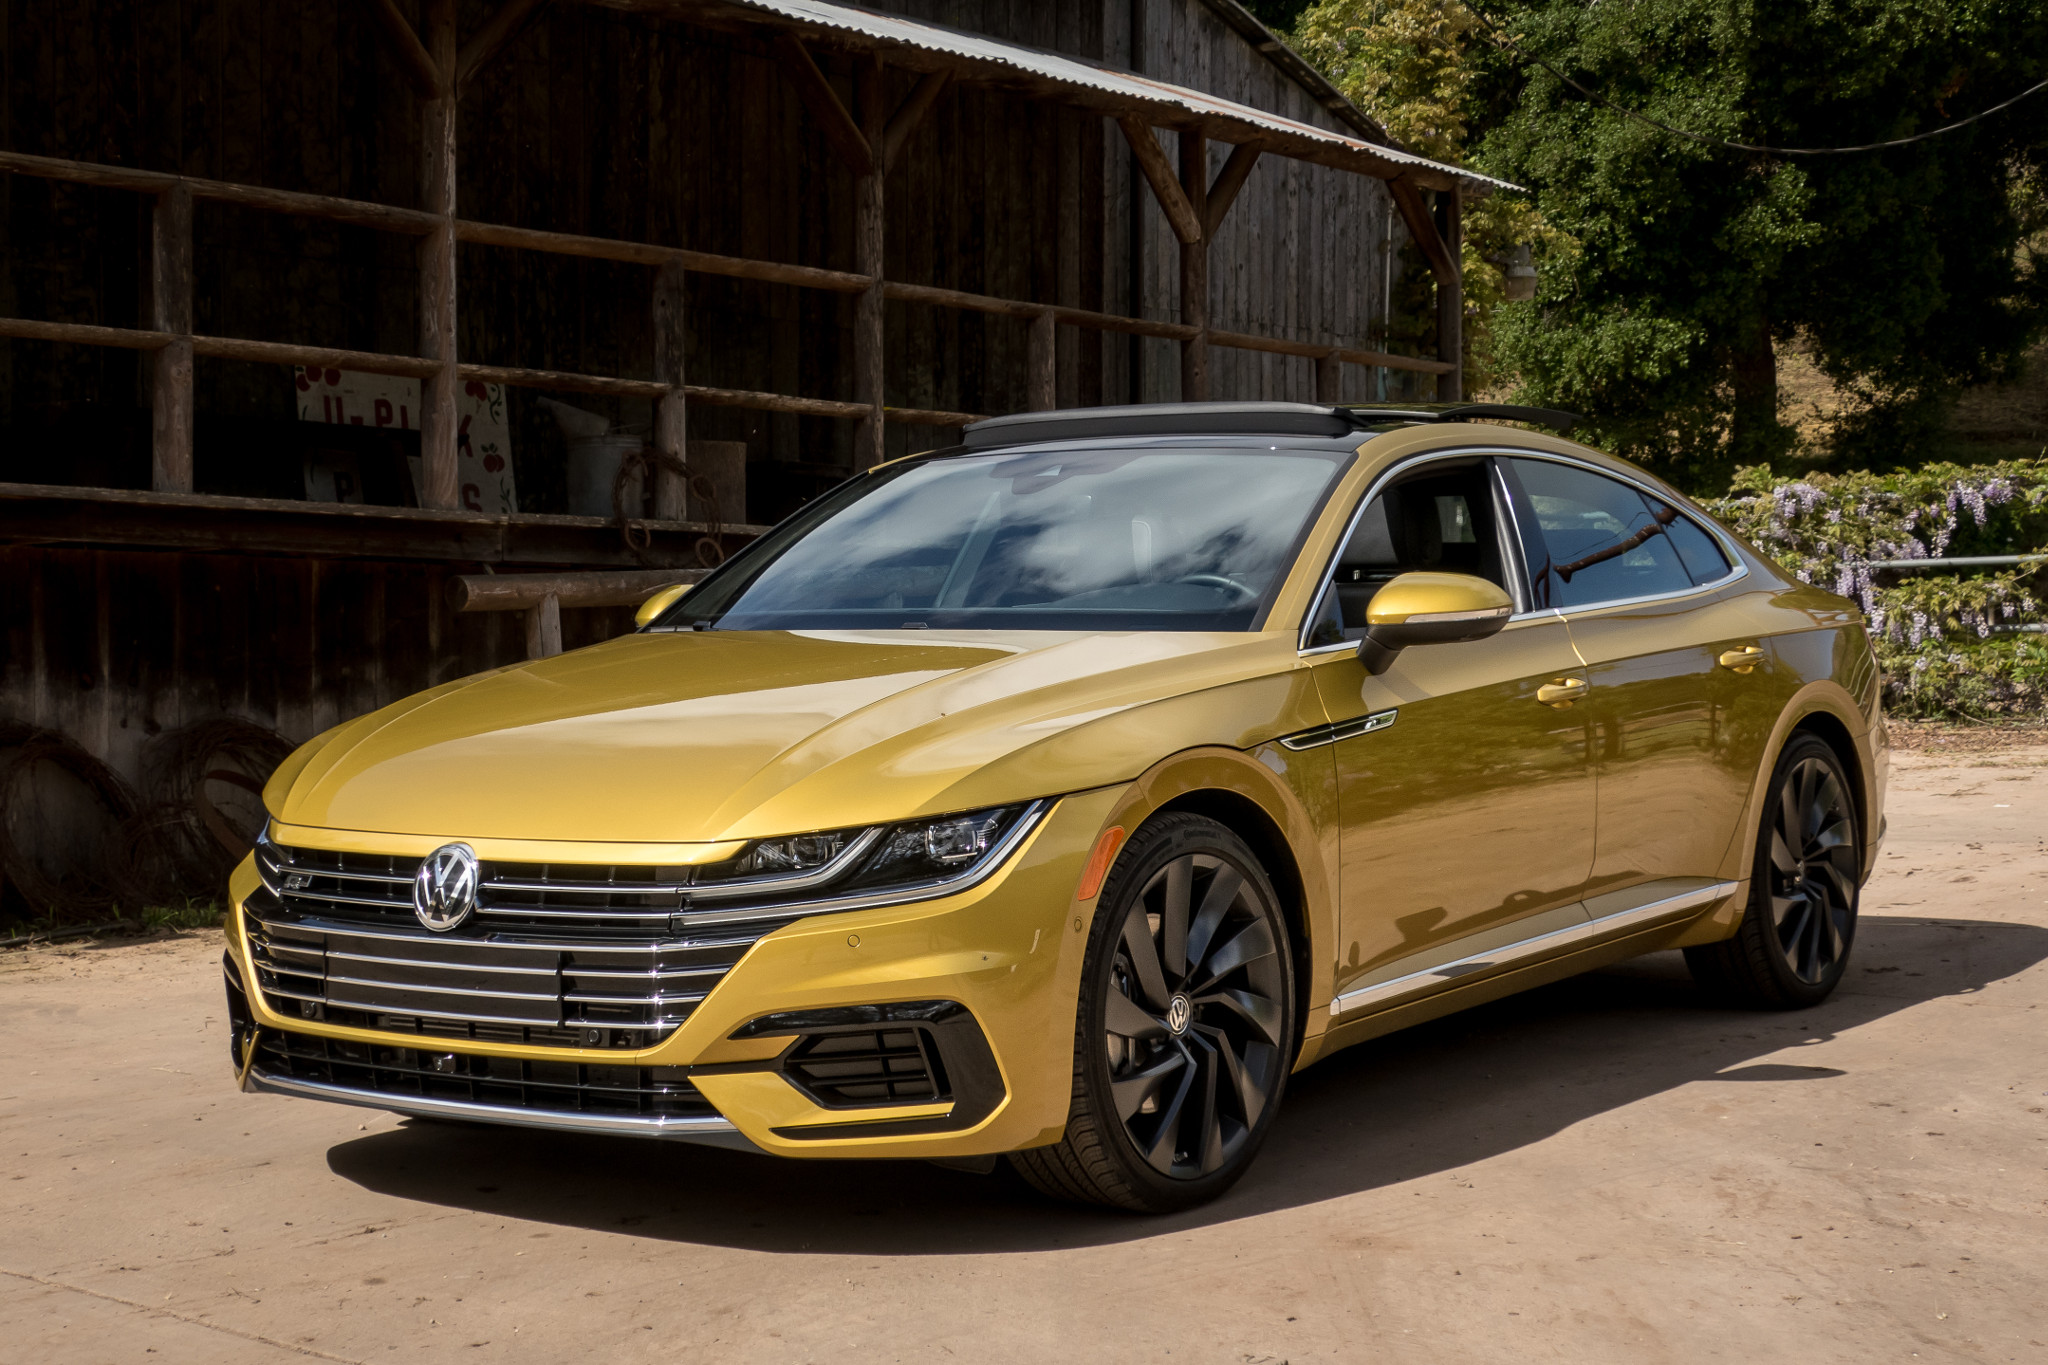 2019 Volkswagen Arteon: Everything You Need to Know